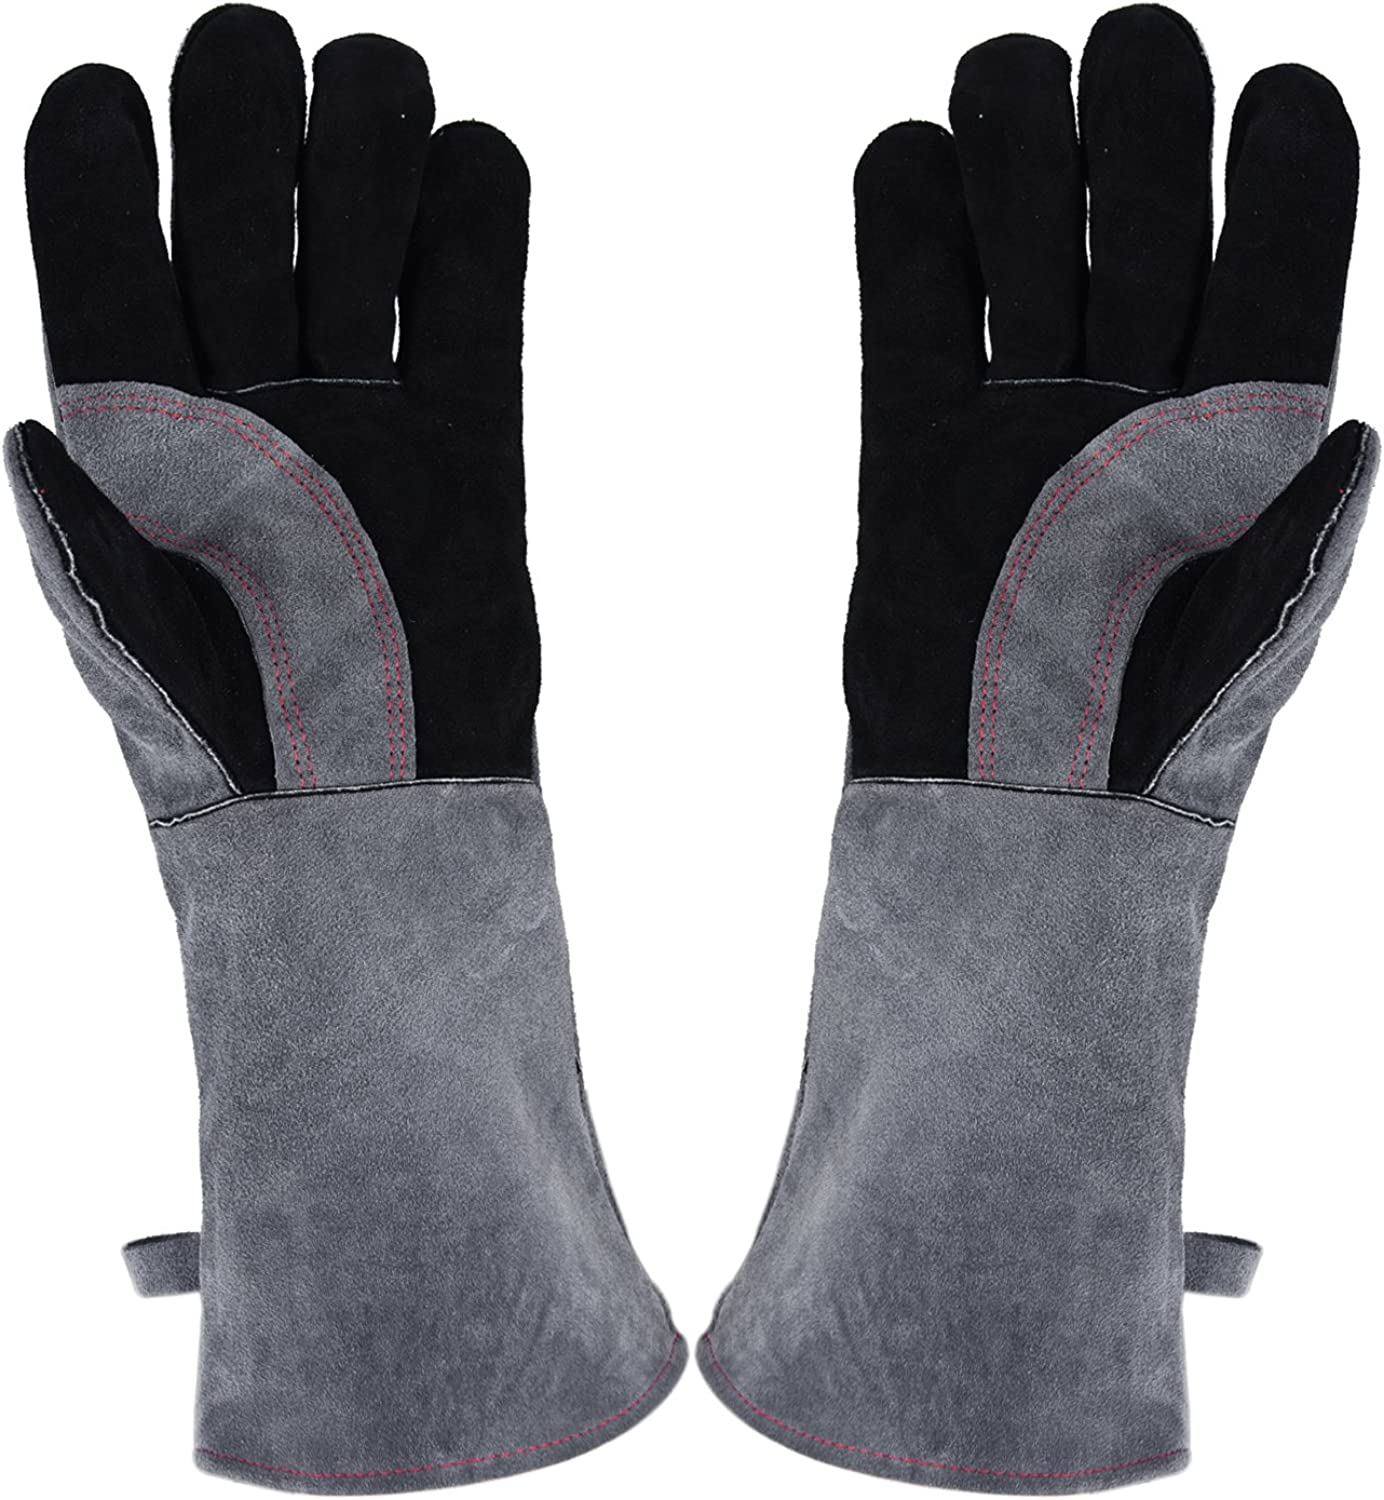 PlasMaller 16 Inches 932℉ Leather Forge Recommendation Gloves Welding w Online limited product